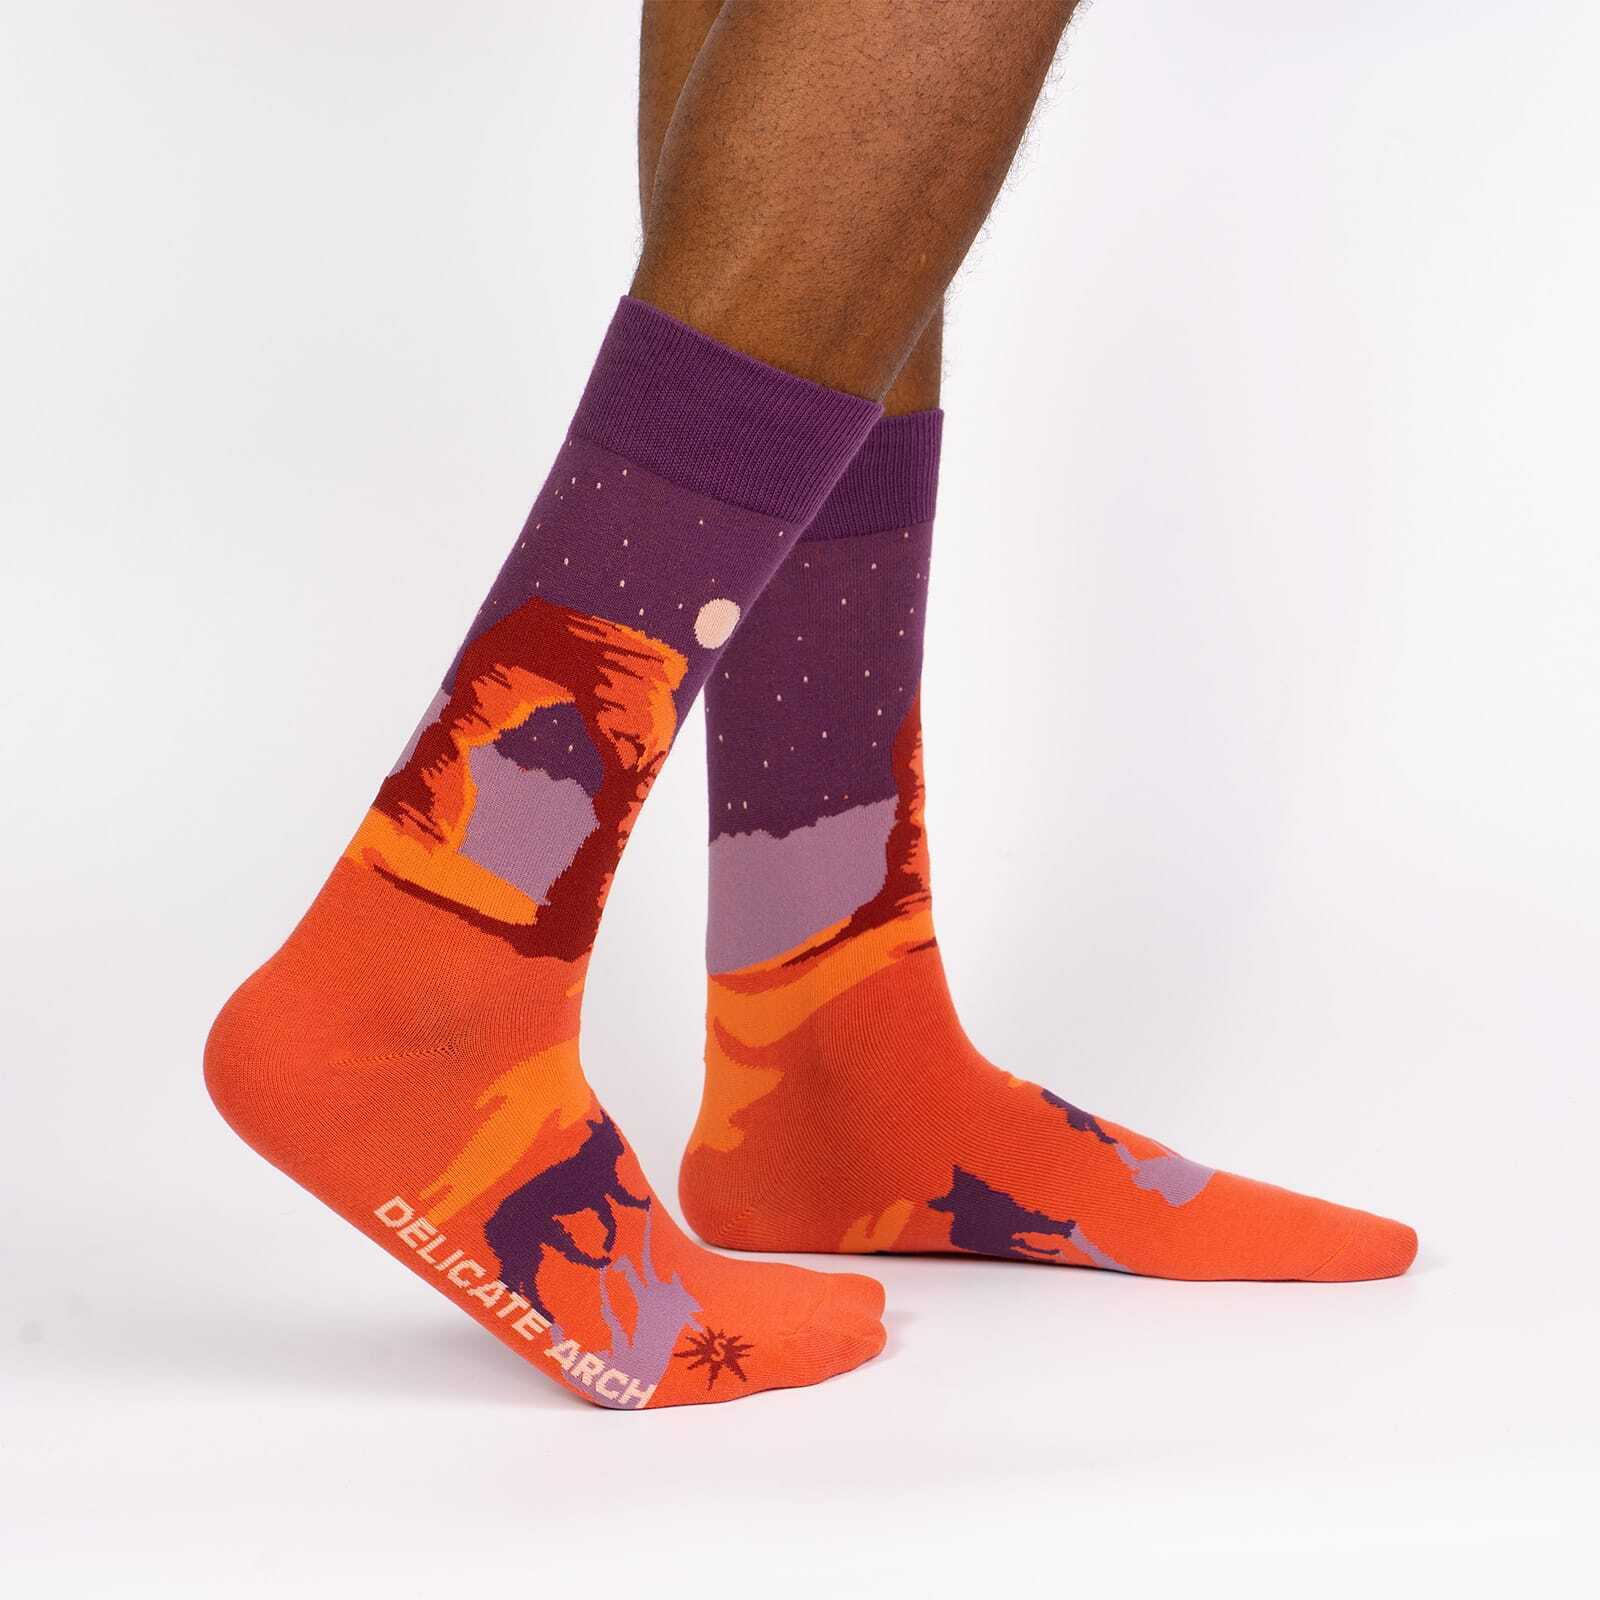 Delicate Arch - Road Trip Travel Crew Socks Orange - Men's in Orange